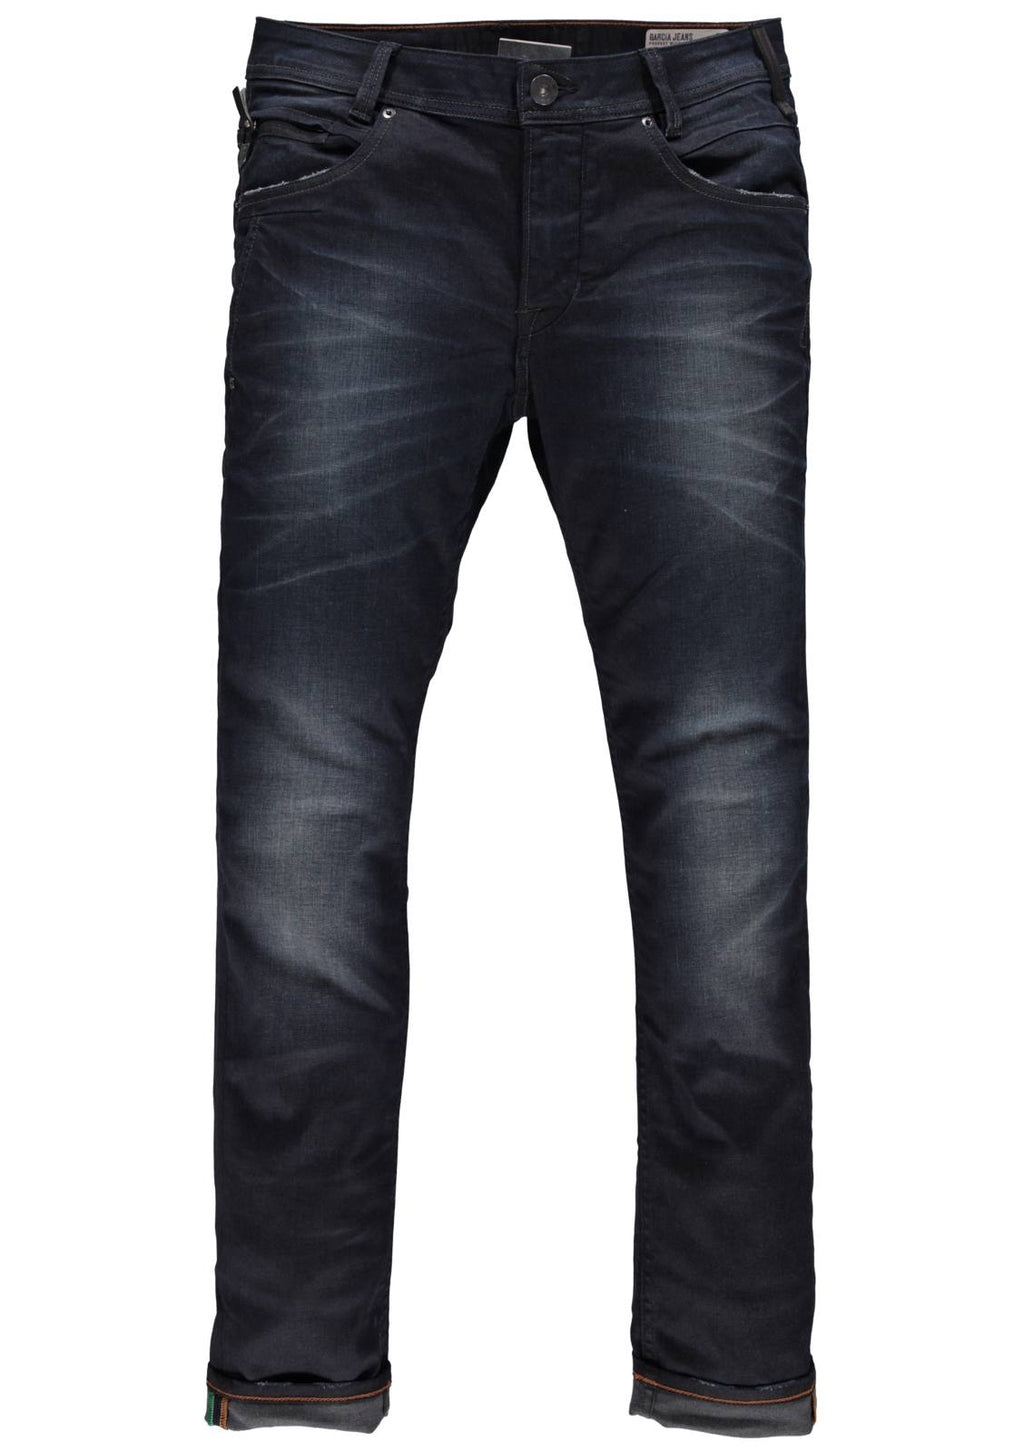 Garcia RUSSO Edition Dark Used Jeans